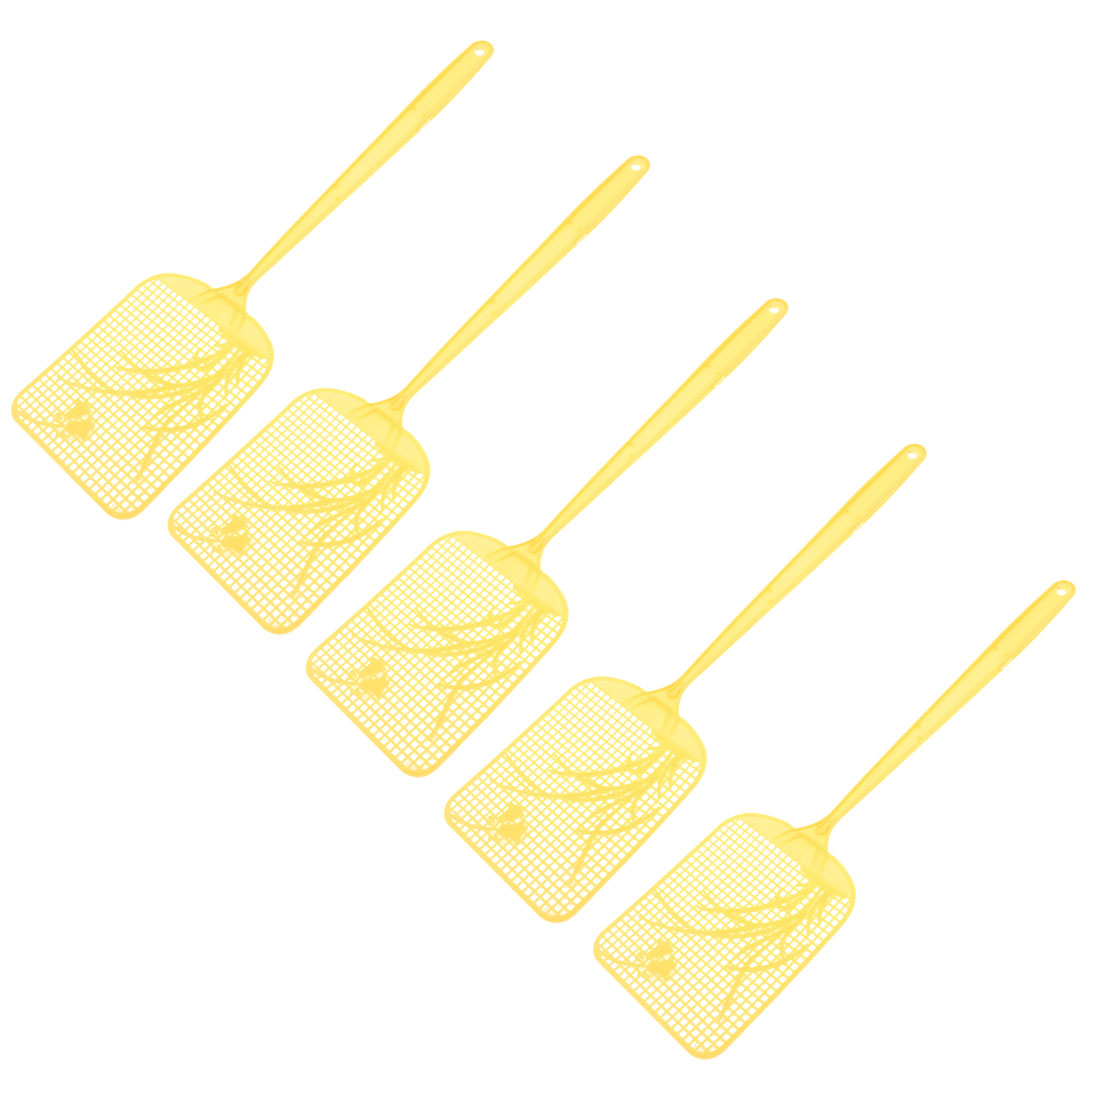 5 Pcs Yellow Plastic Long Handle Mosquito Cockroach Tool Fly Swatter